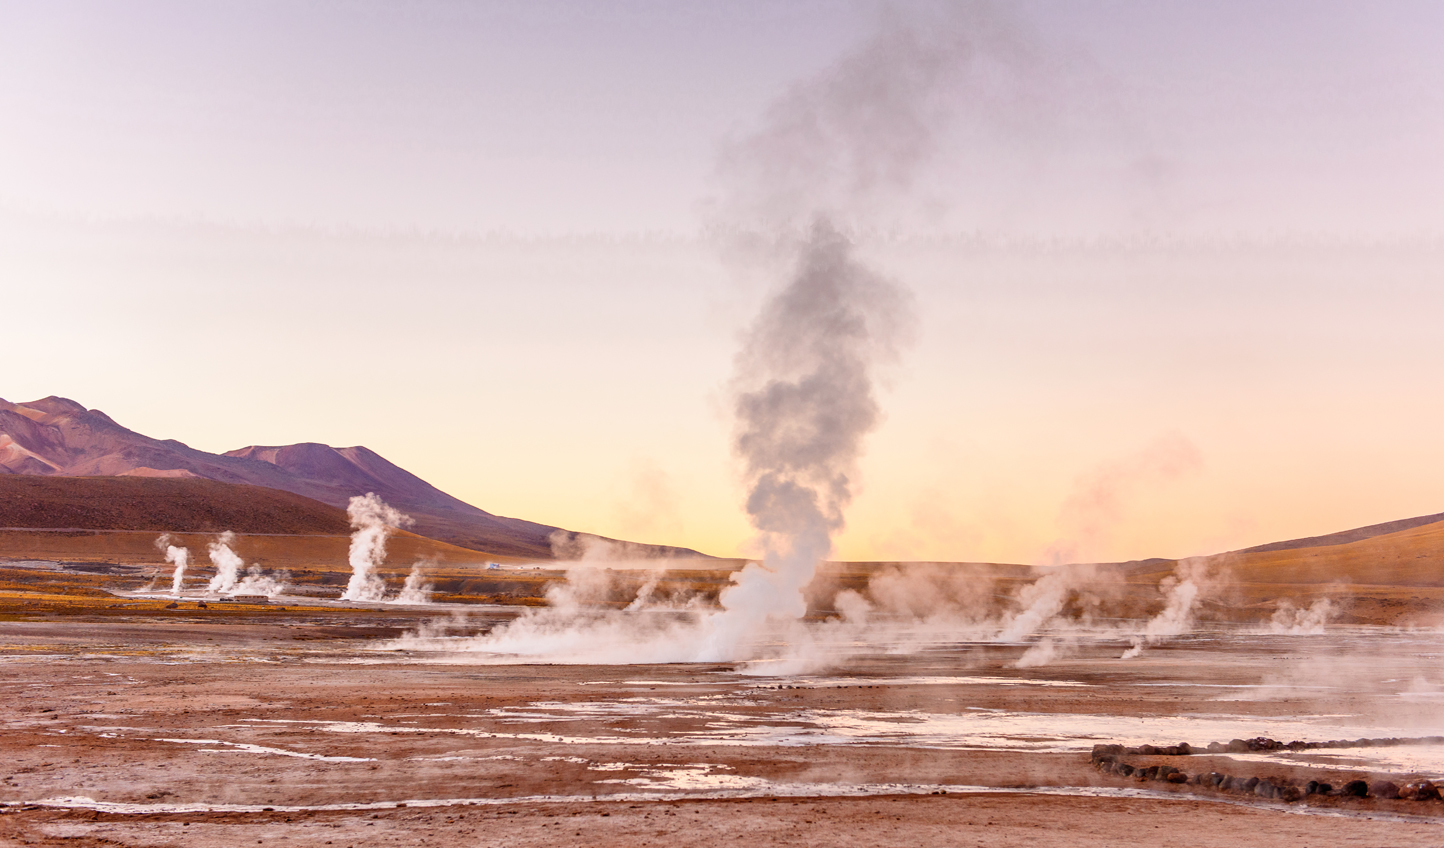 Watch in wonder as the El Gatio Geysers erupt around you